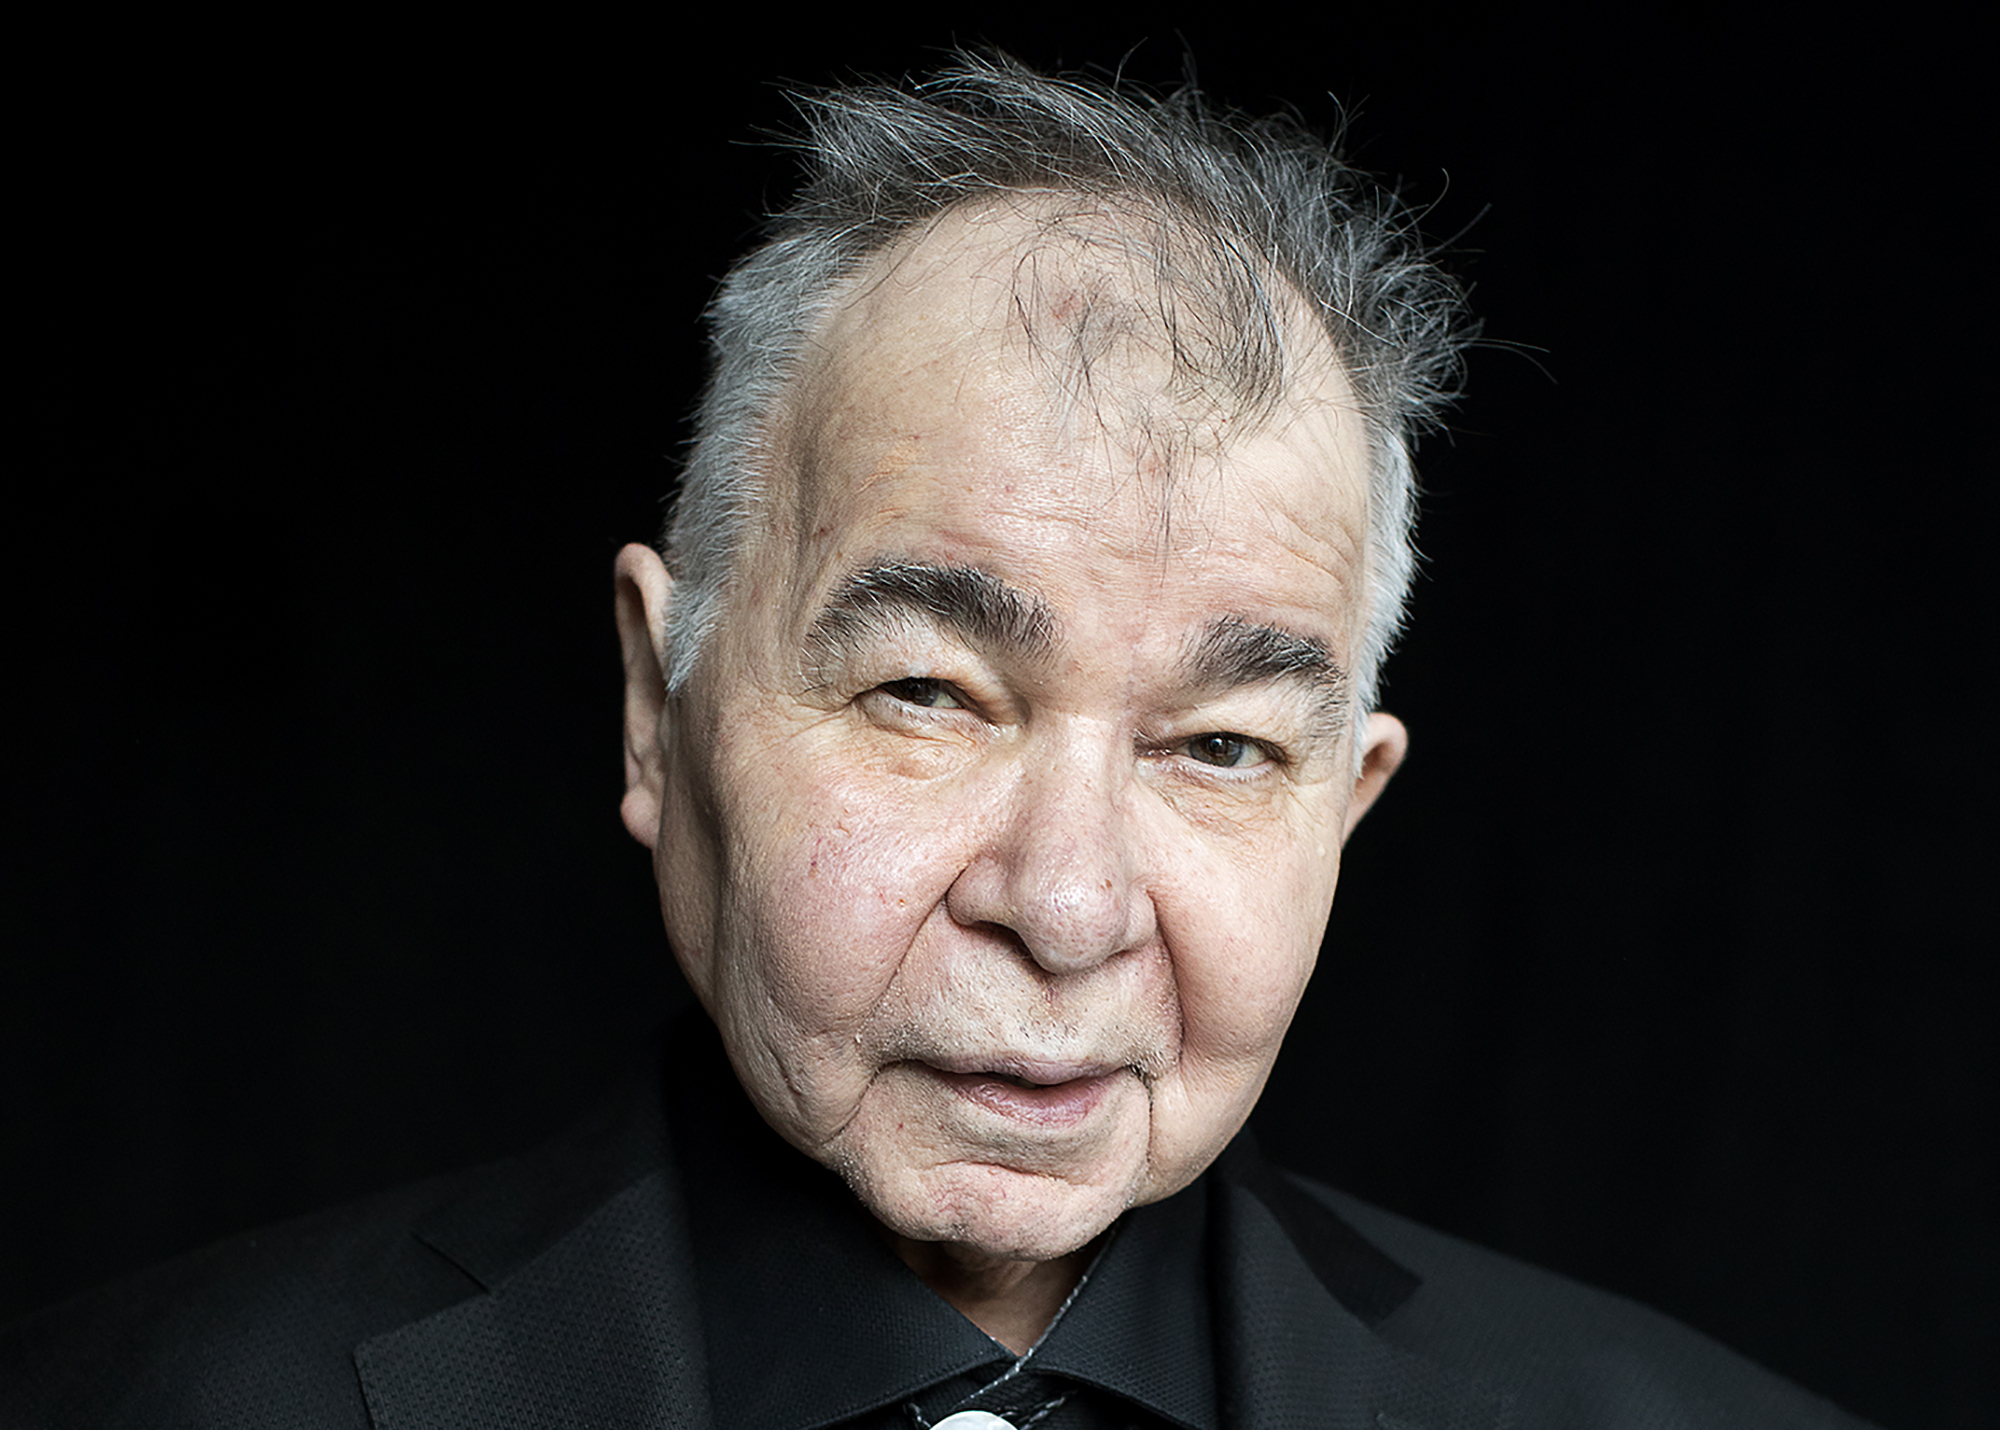 johnprine4-wide